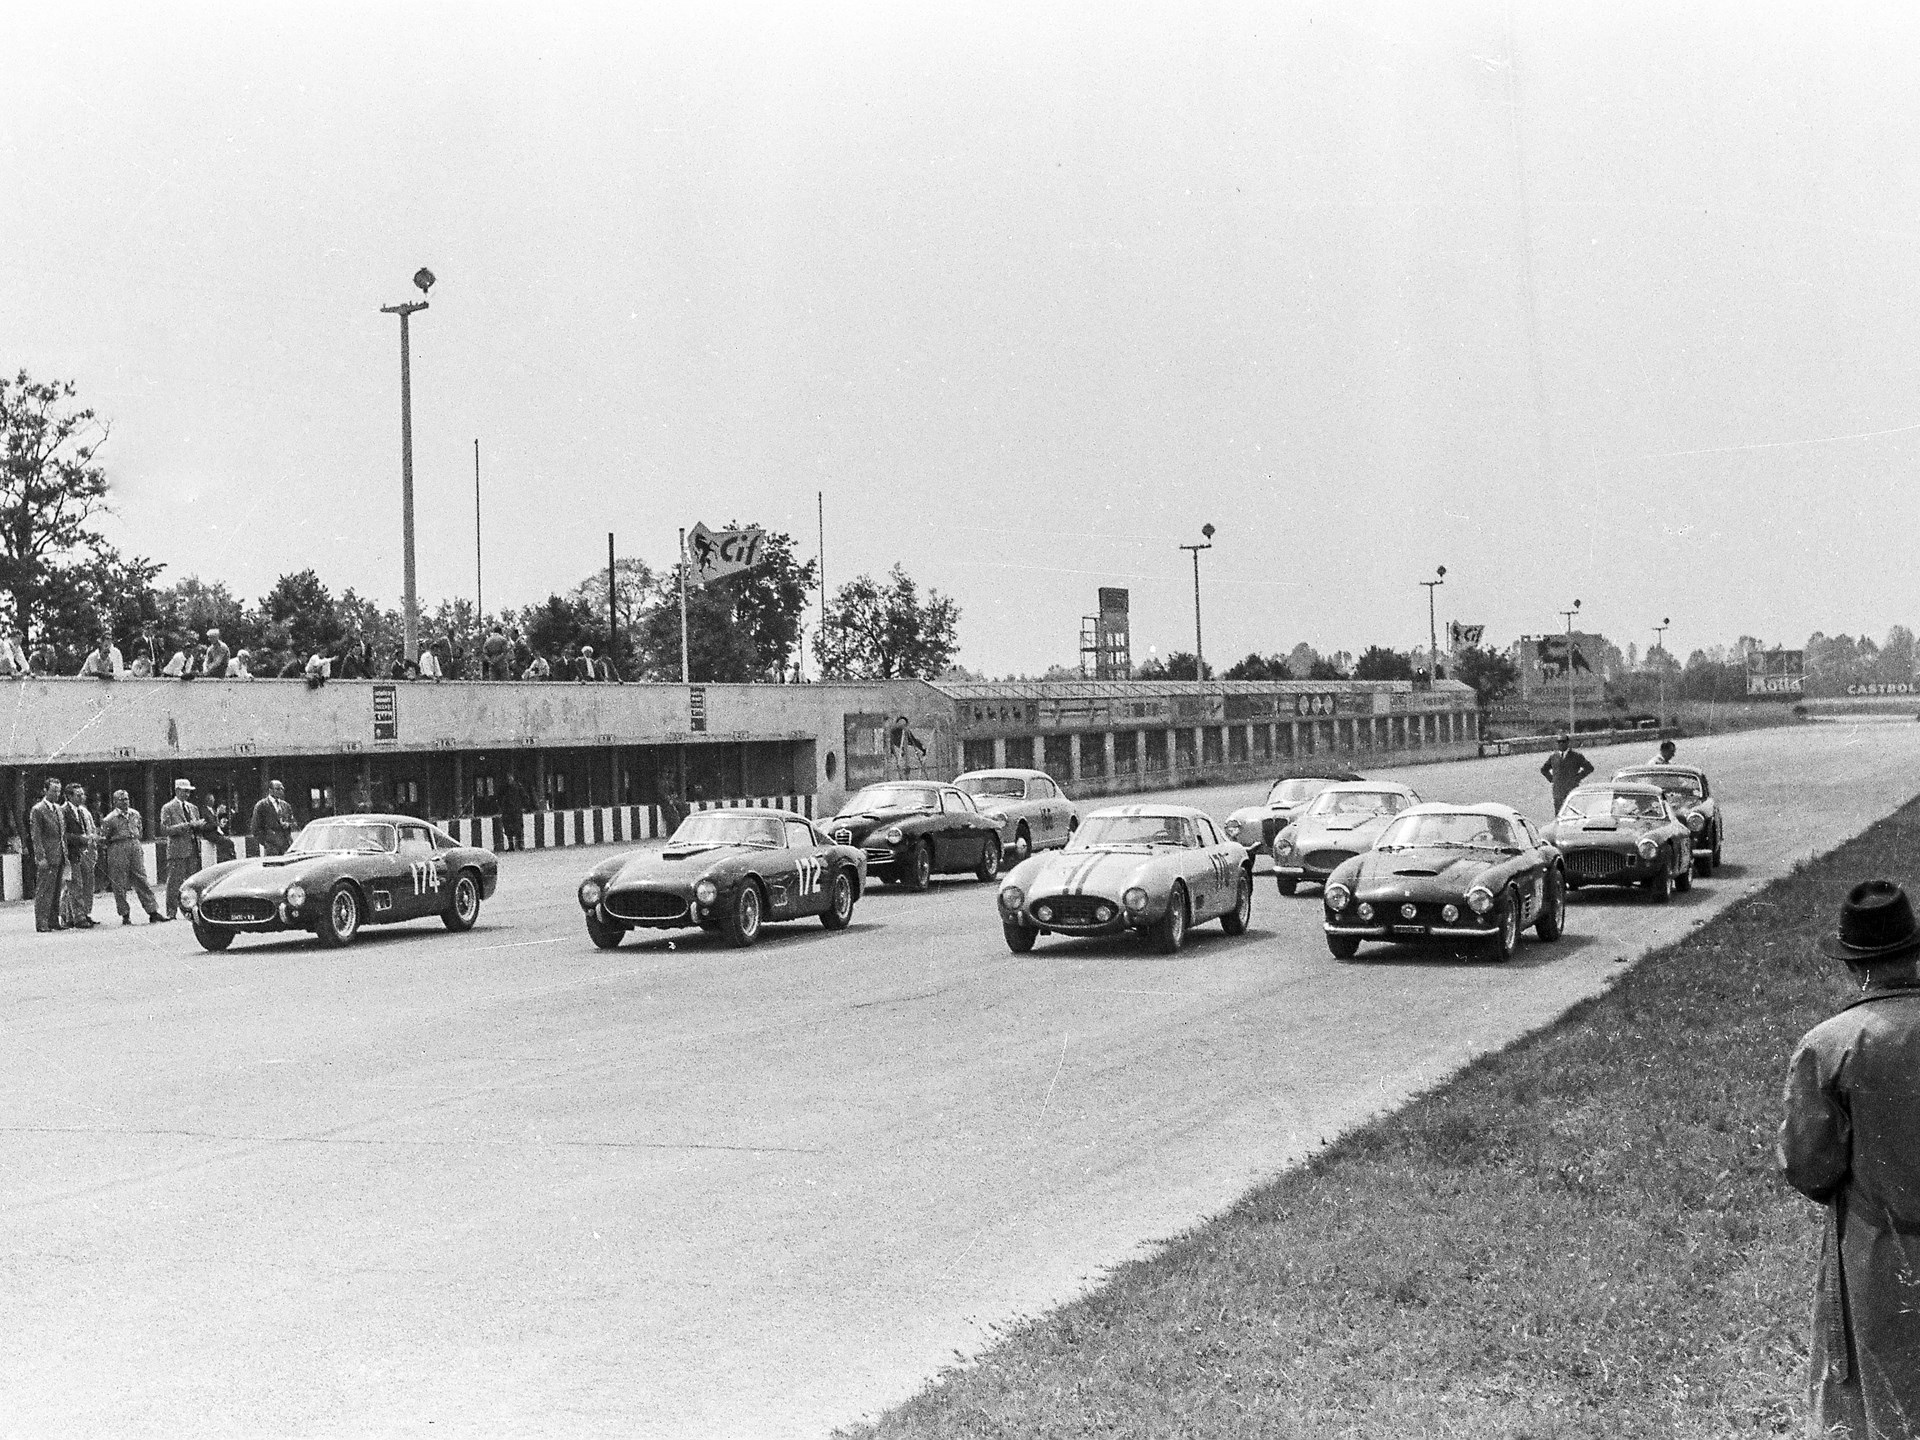 Chassis no. 0507 GT lines up for the start of the 1957 Coppa Lombarda in Monza where it finished 2nd overall.